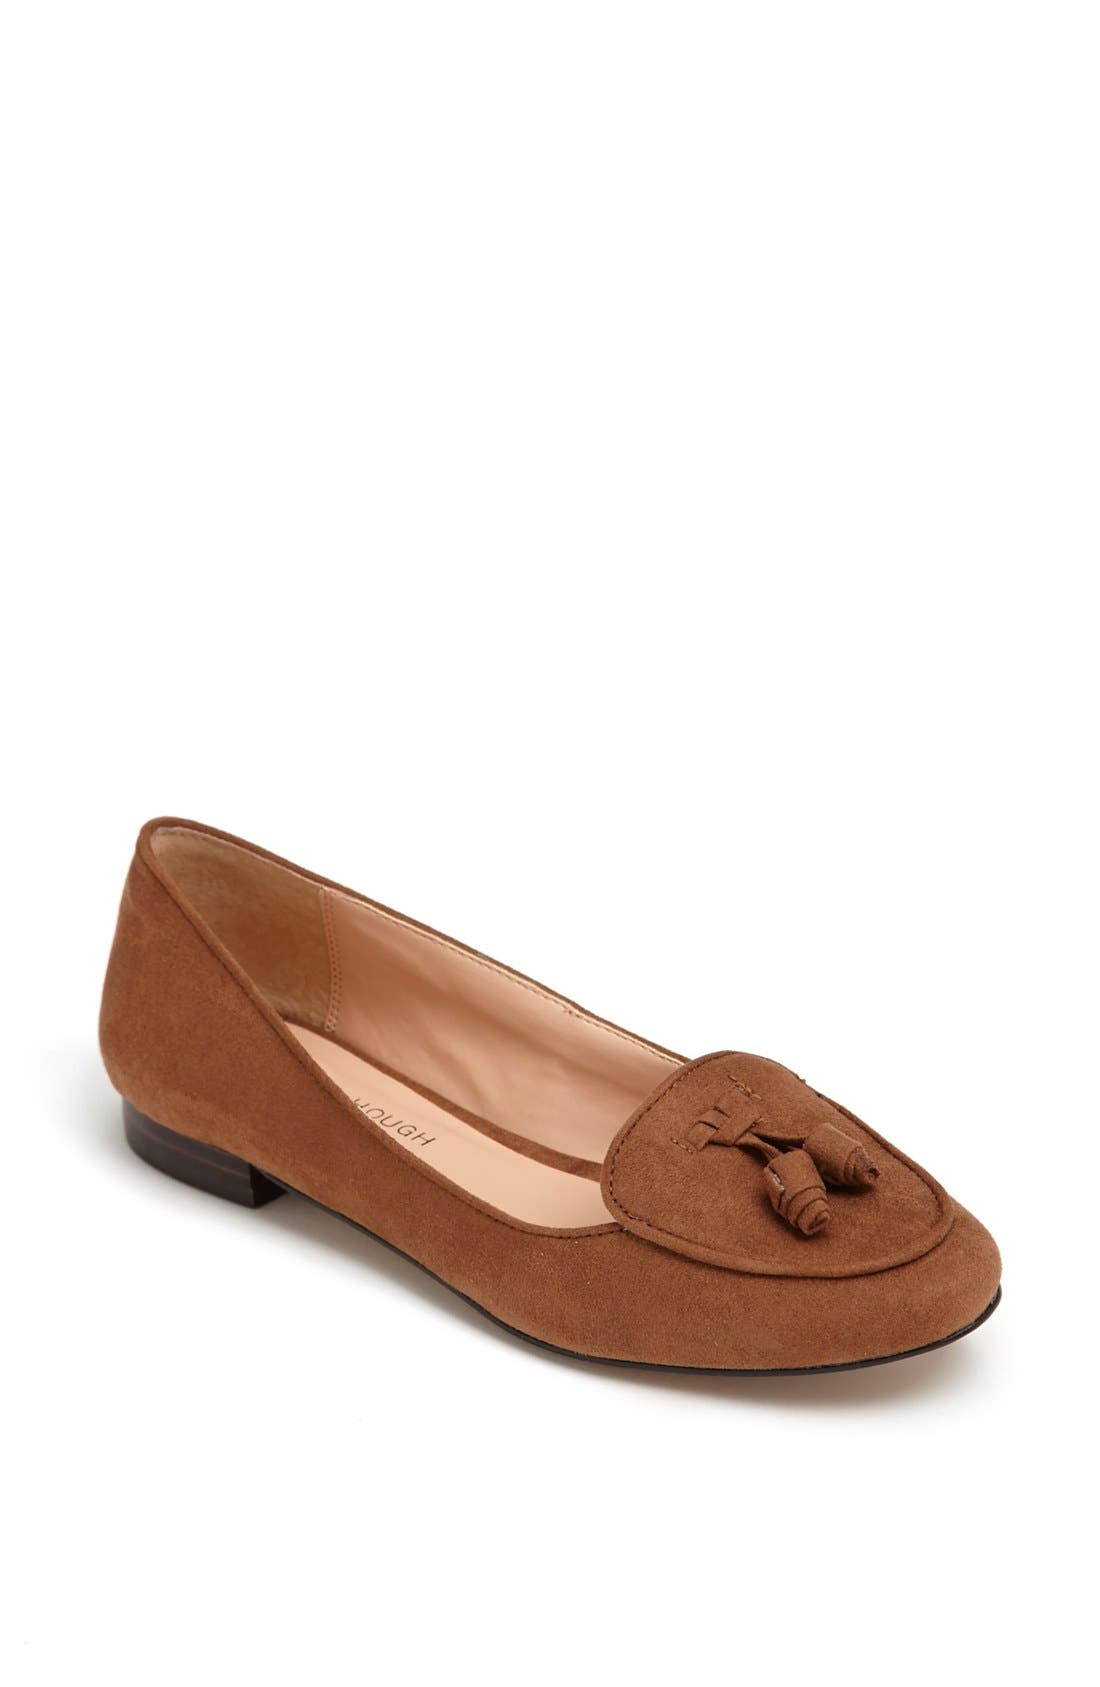 Main Image - Julianne Hough for Sole Society 'Cambria' Smoking Slipper Flat